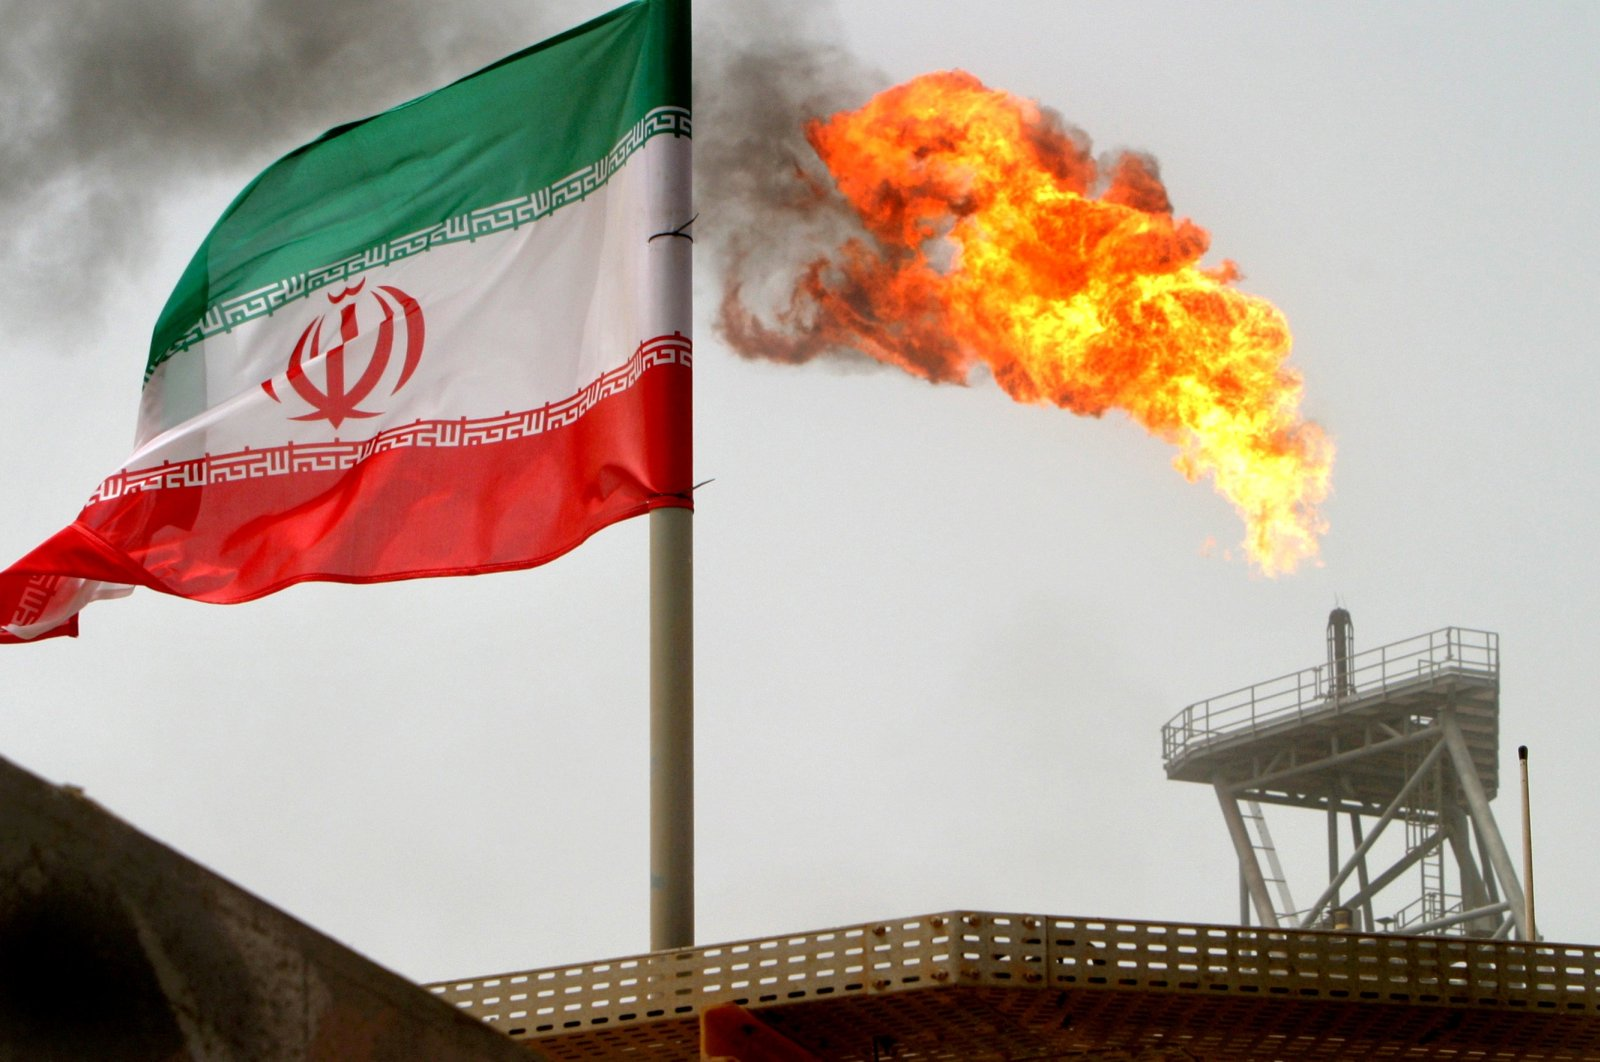 A gas flare at an oil production platform in the Soroush oil fields is seen alongside an Iranian flag in the Persian Gulf, Iran, July 25, 2005. (Reuters Photo)